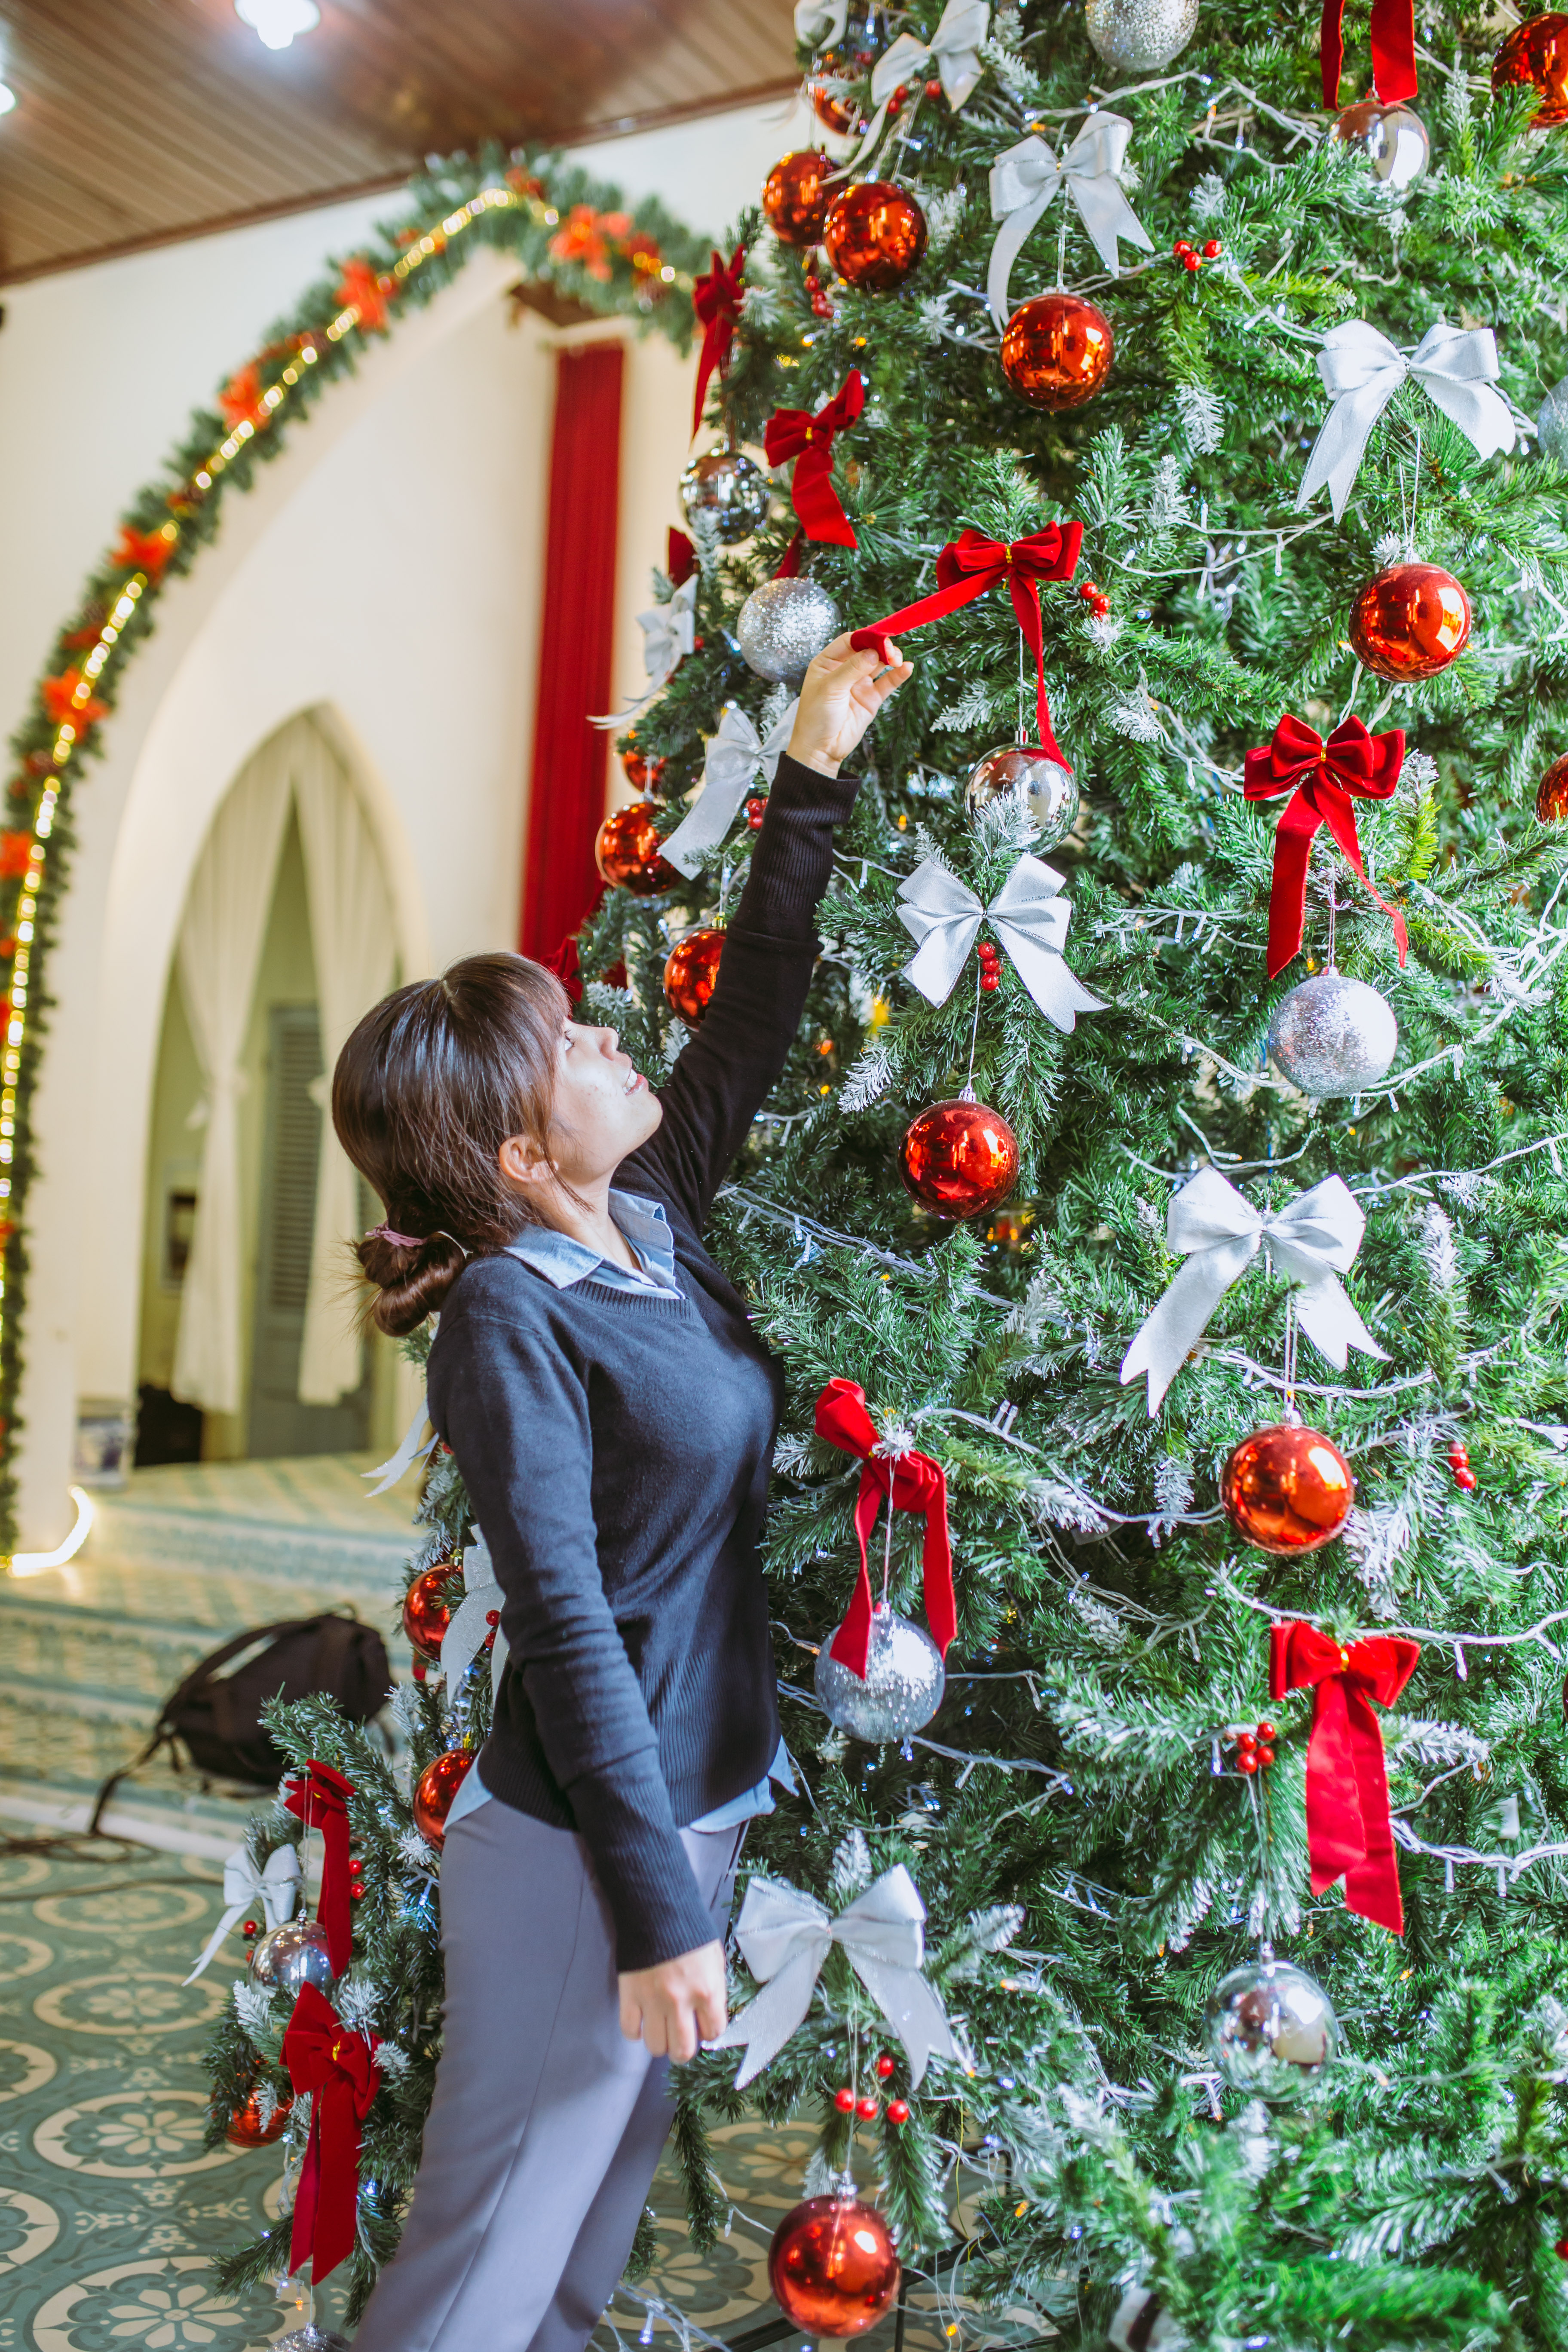 Woman Putting Ribbon Bow On Christmas Tree Free Stock Photo